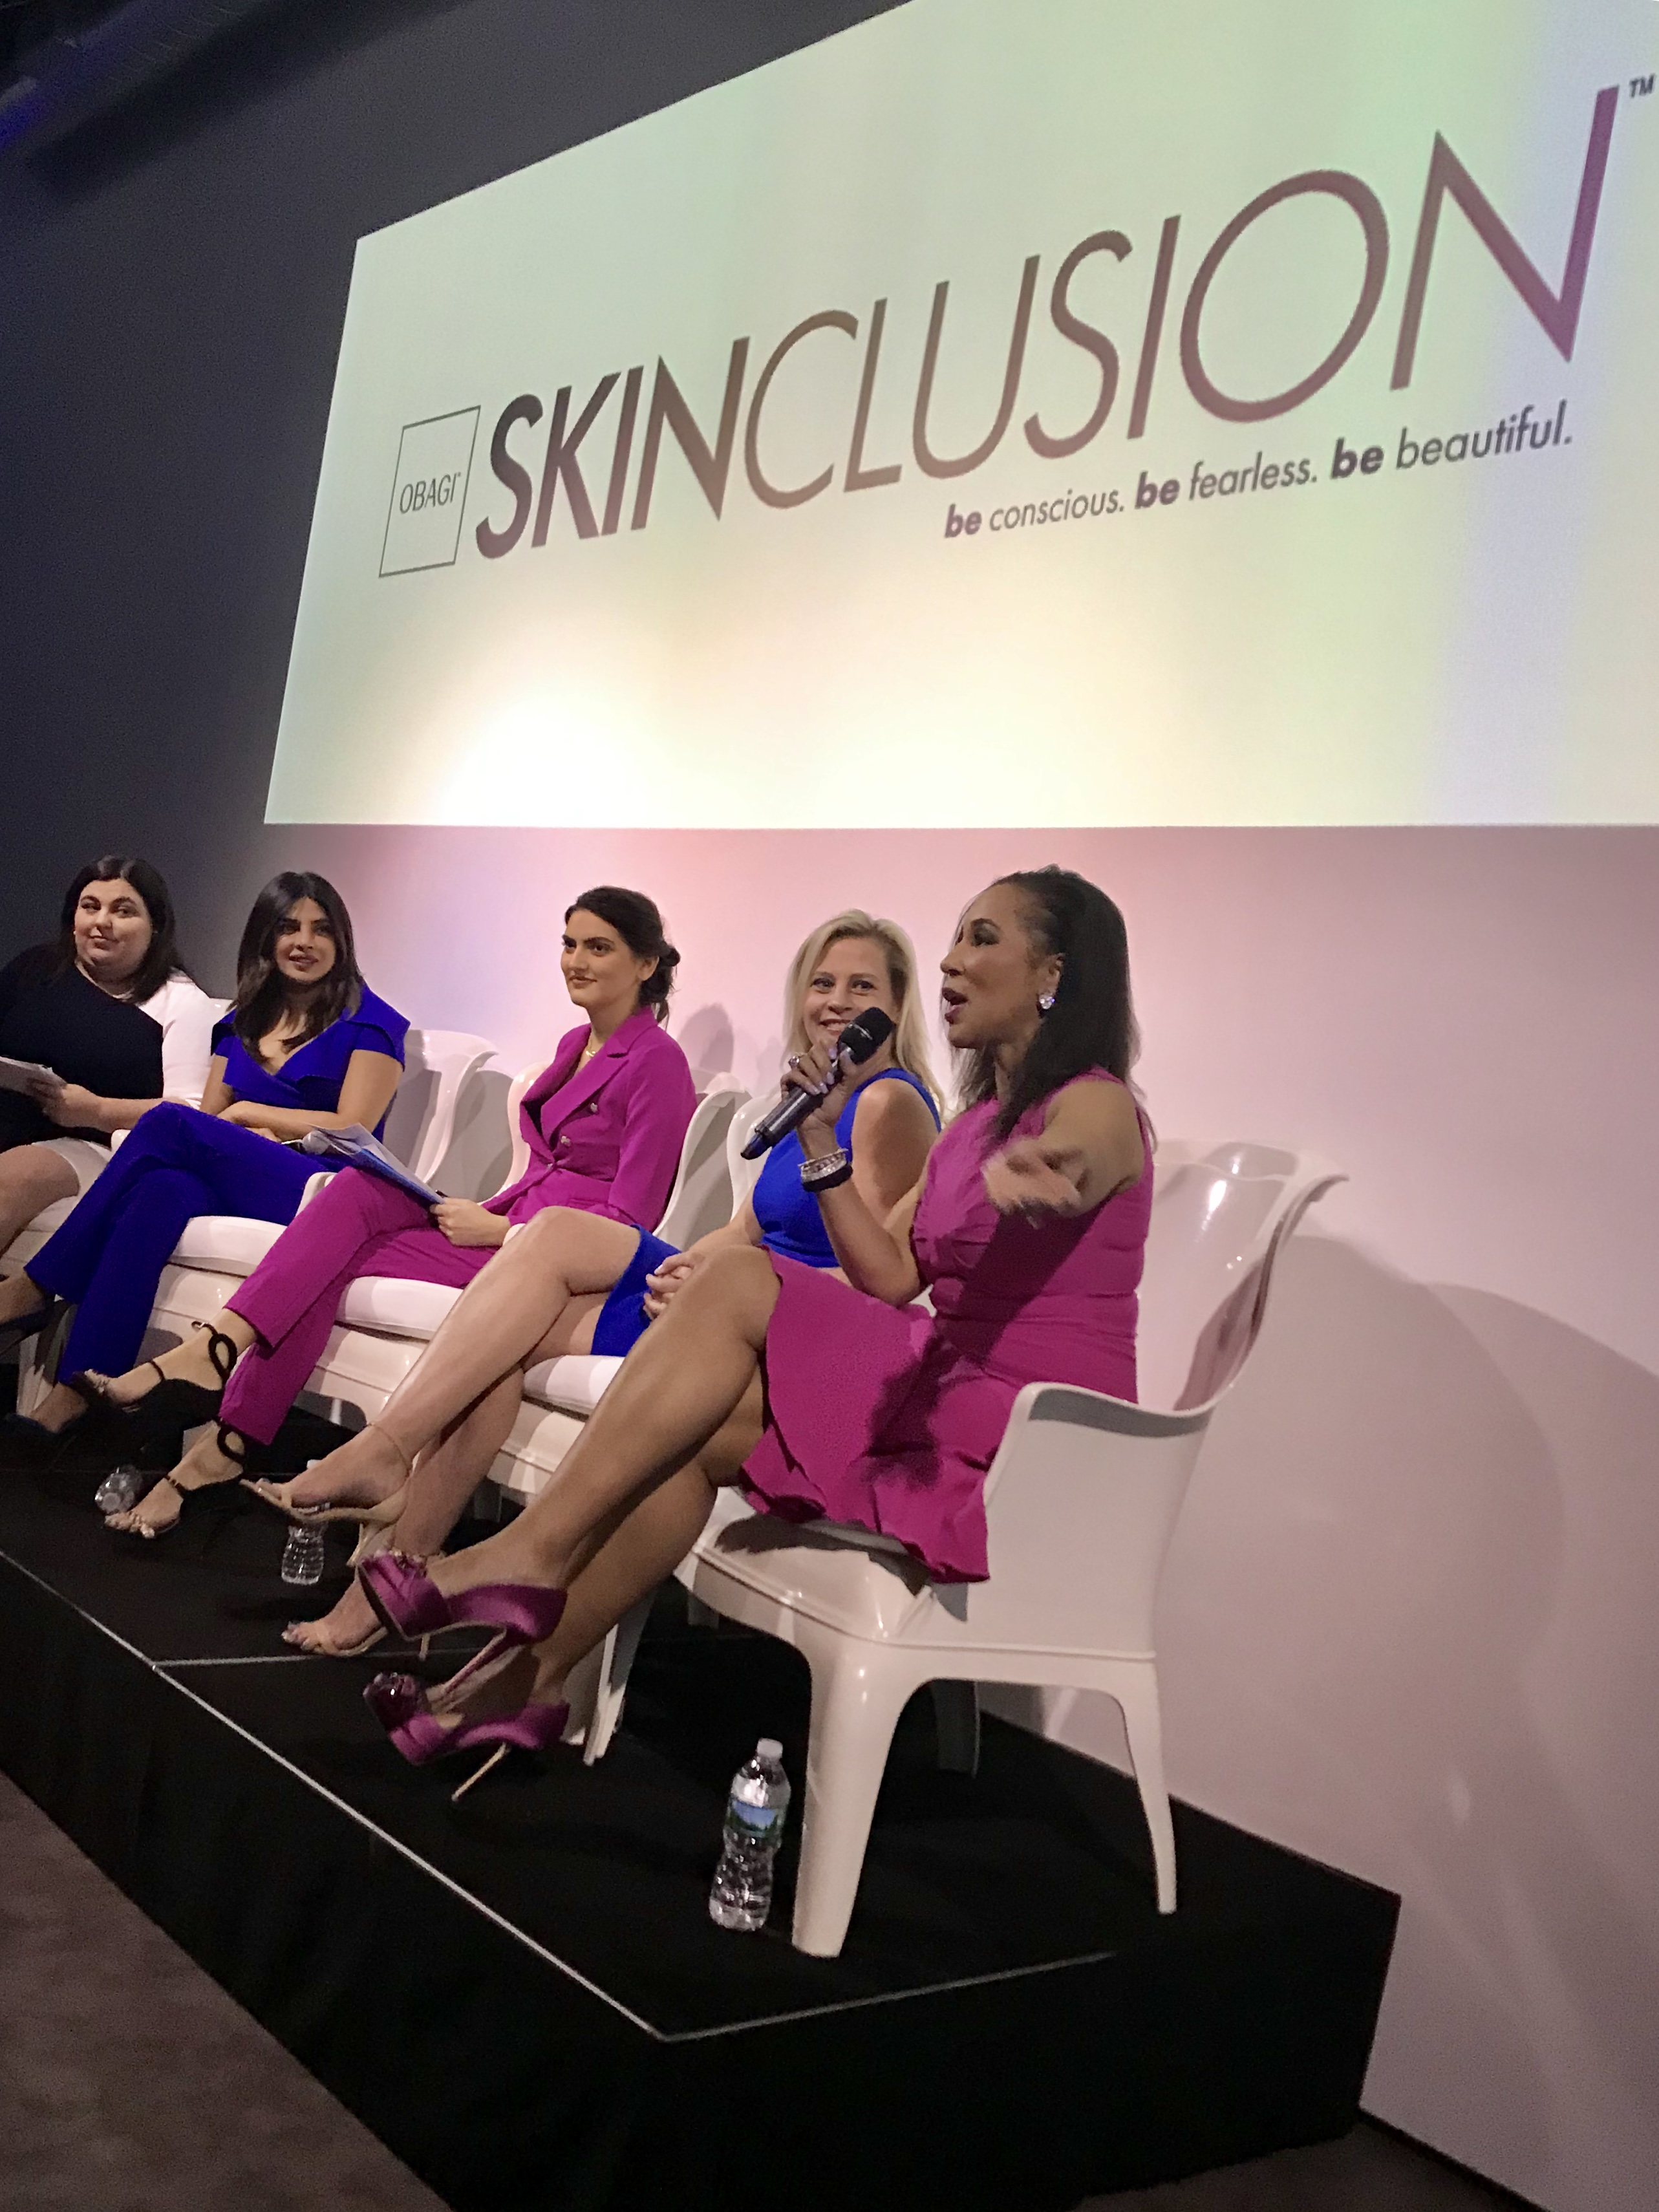 Obagi Launches SKINCLUSION Initiative to Celebrate Diversity with Brand Ambassador and Priyanka Chopra Jonas image